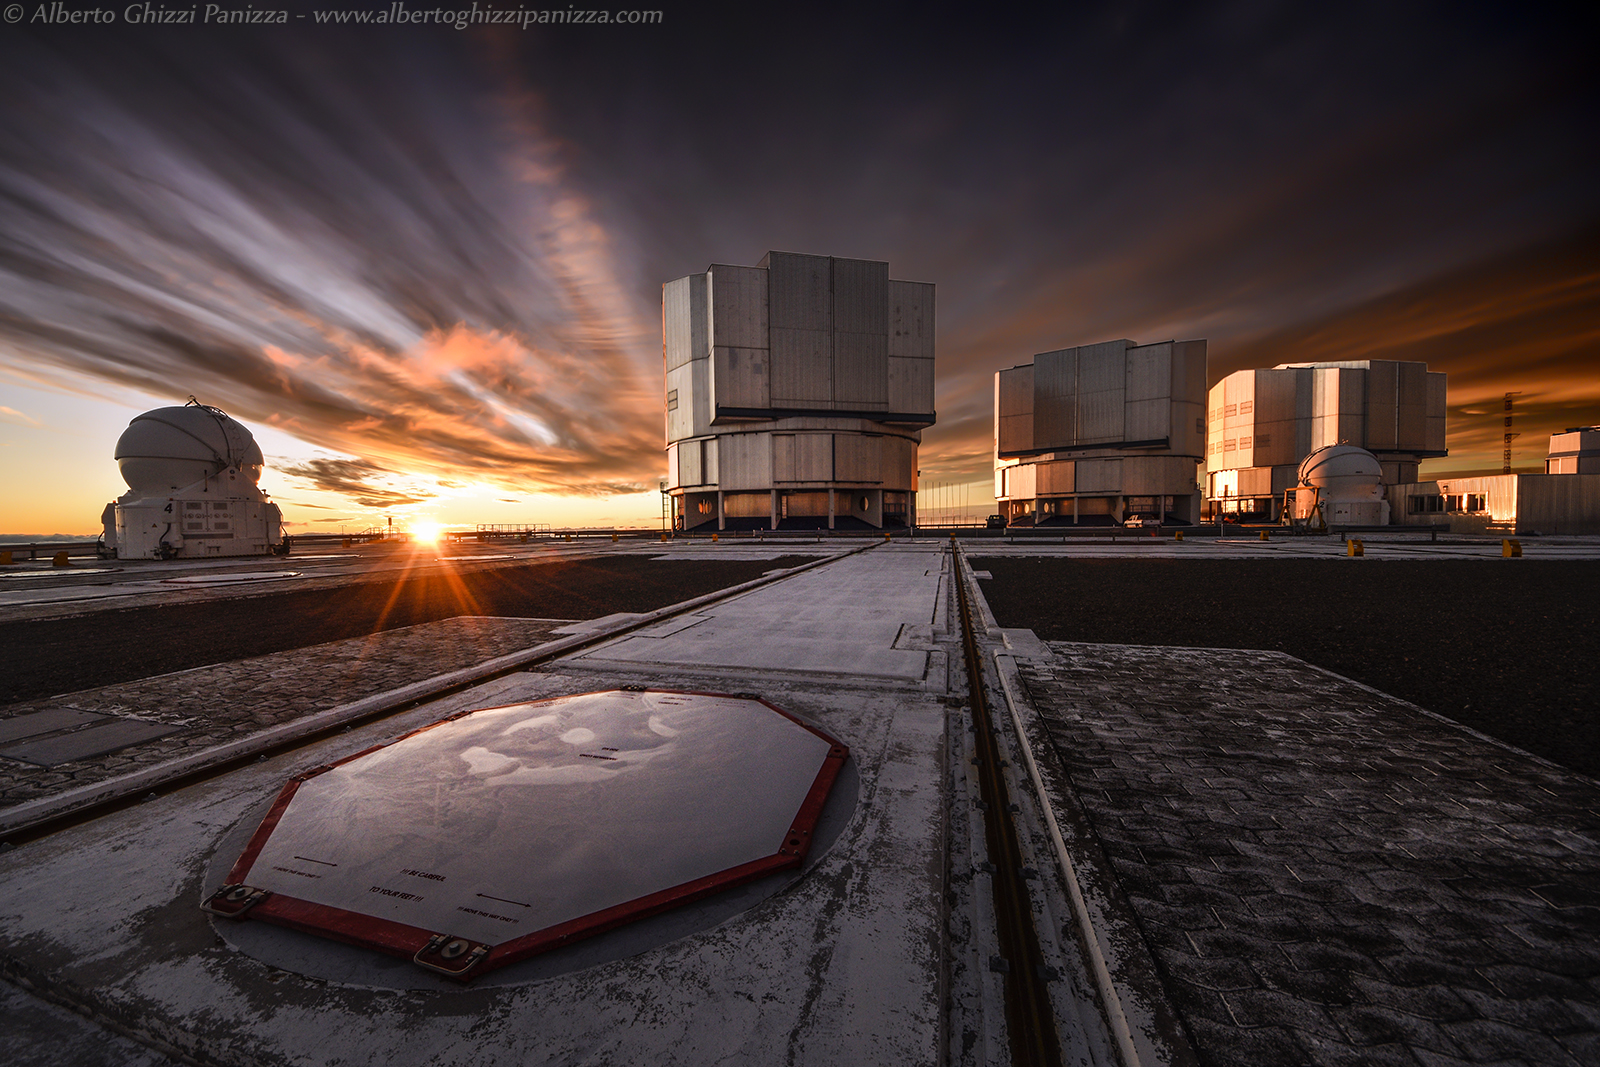 A sunset unusual for Paranal...